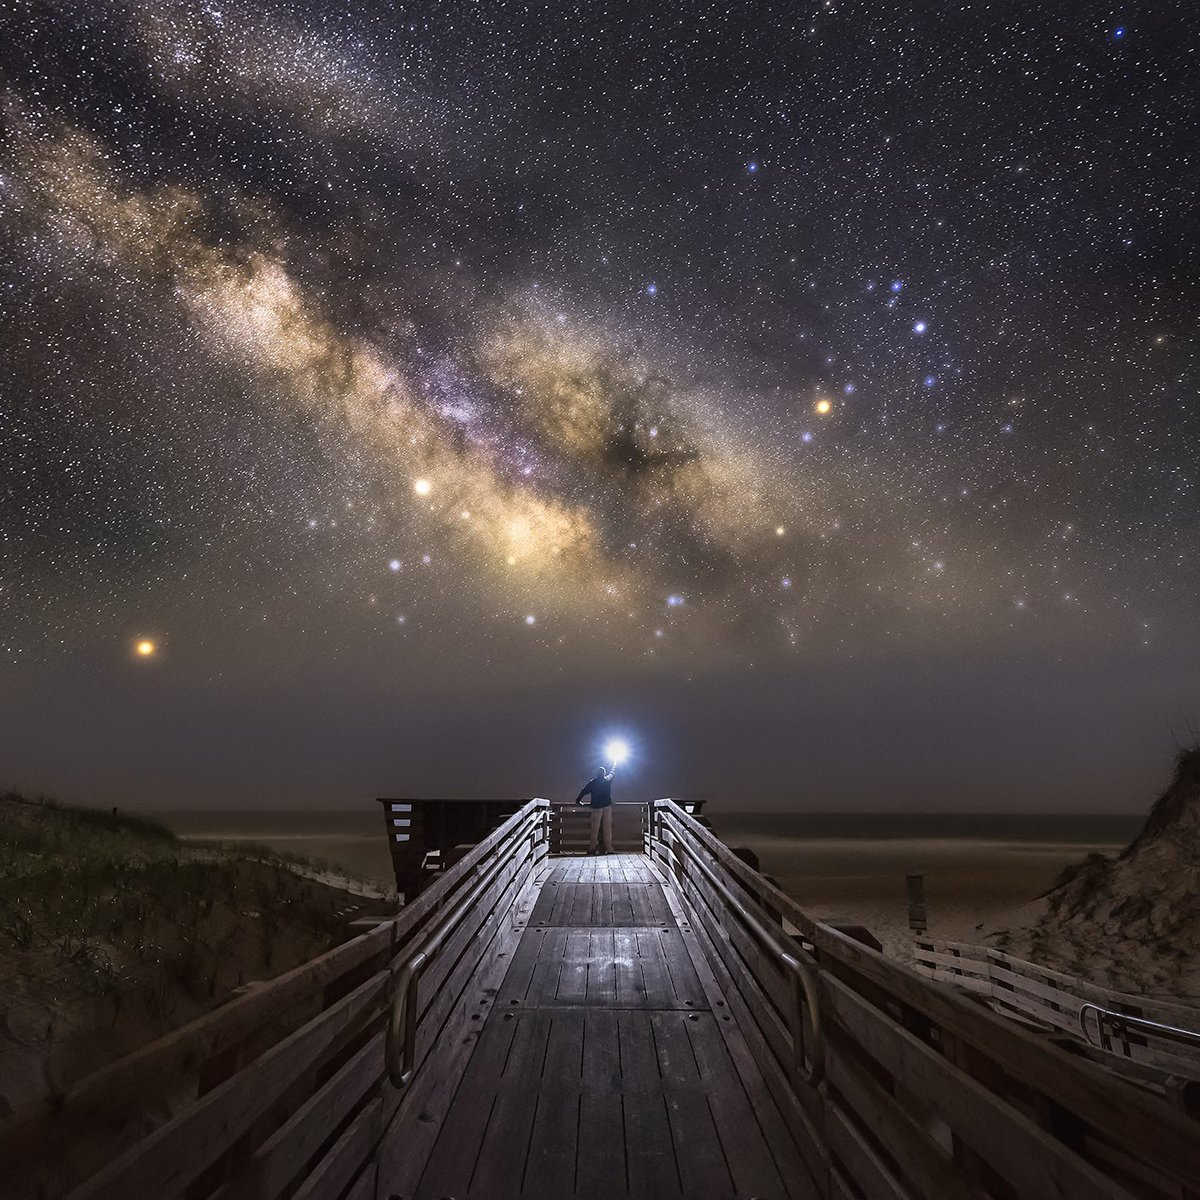 Remote learning meets real-life experiences on the #OuterBanks. 🌌 Far away from city lights, remarkably dark #OBX skies create the perfect setting for stargazing. (📷: Scott C.) https://t.co/v7UaN2Nijo